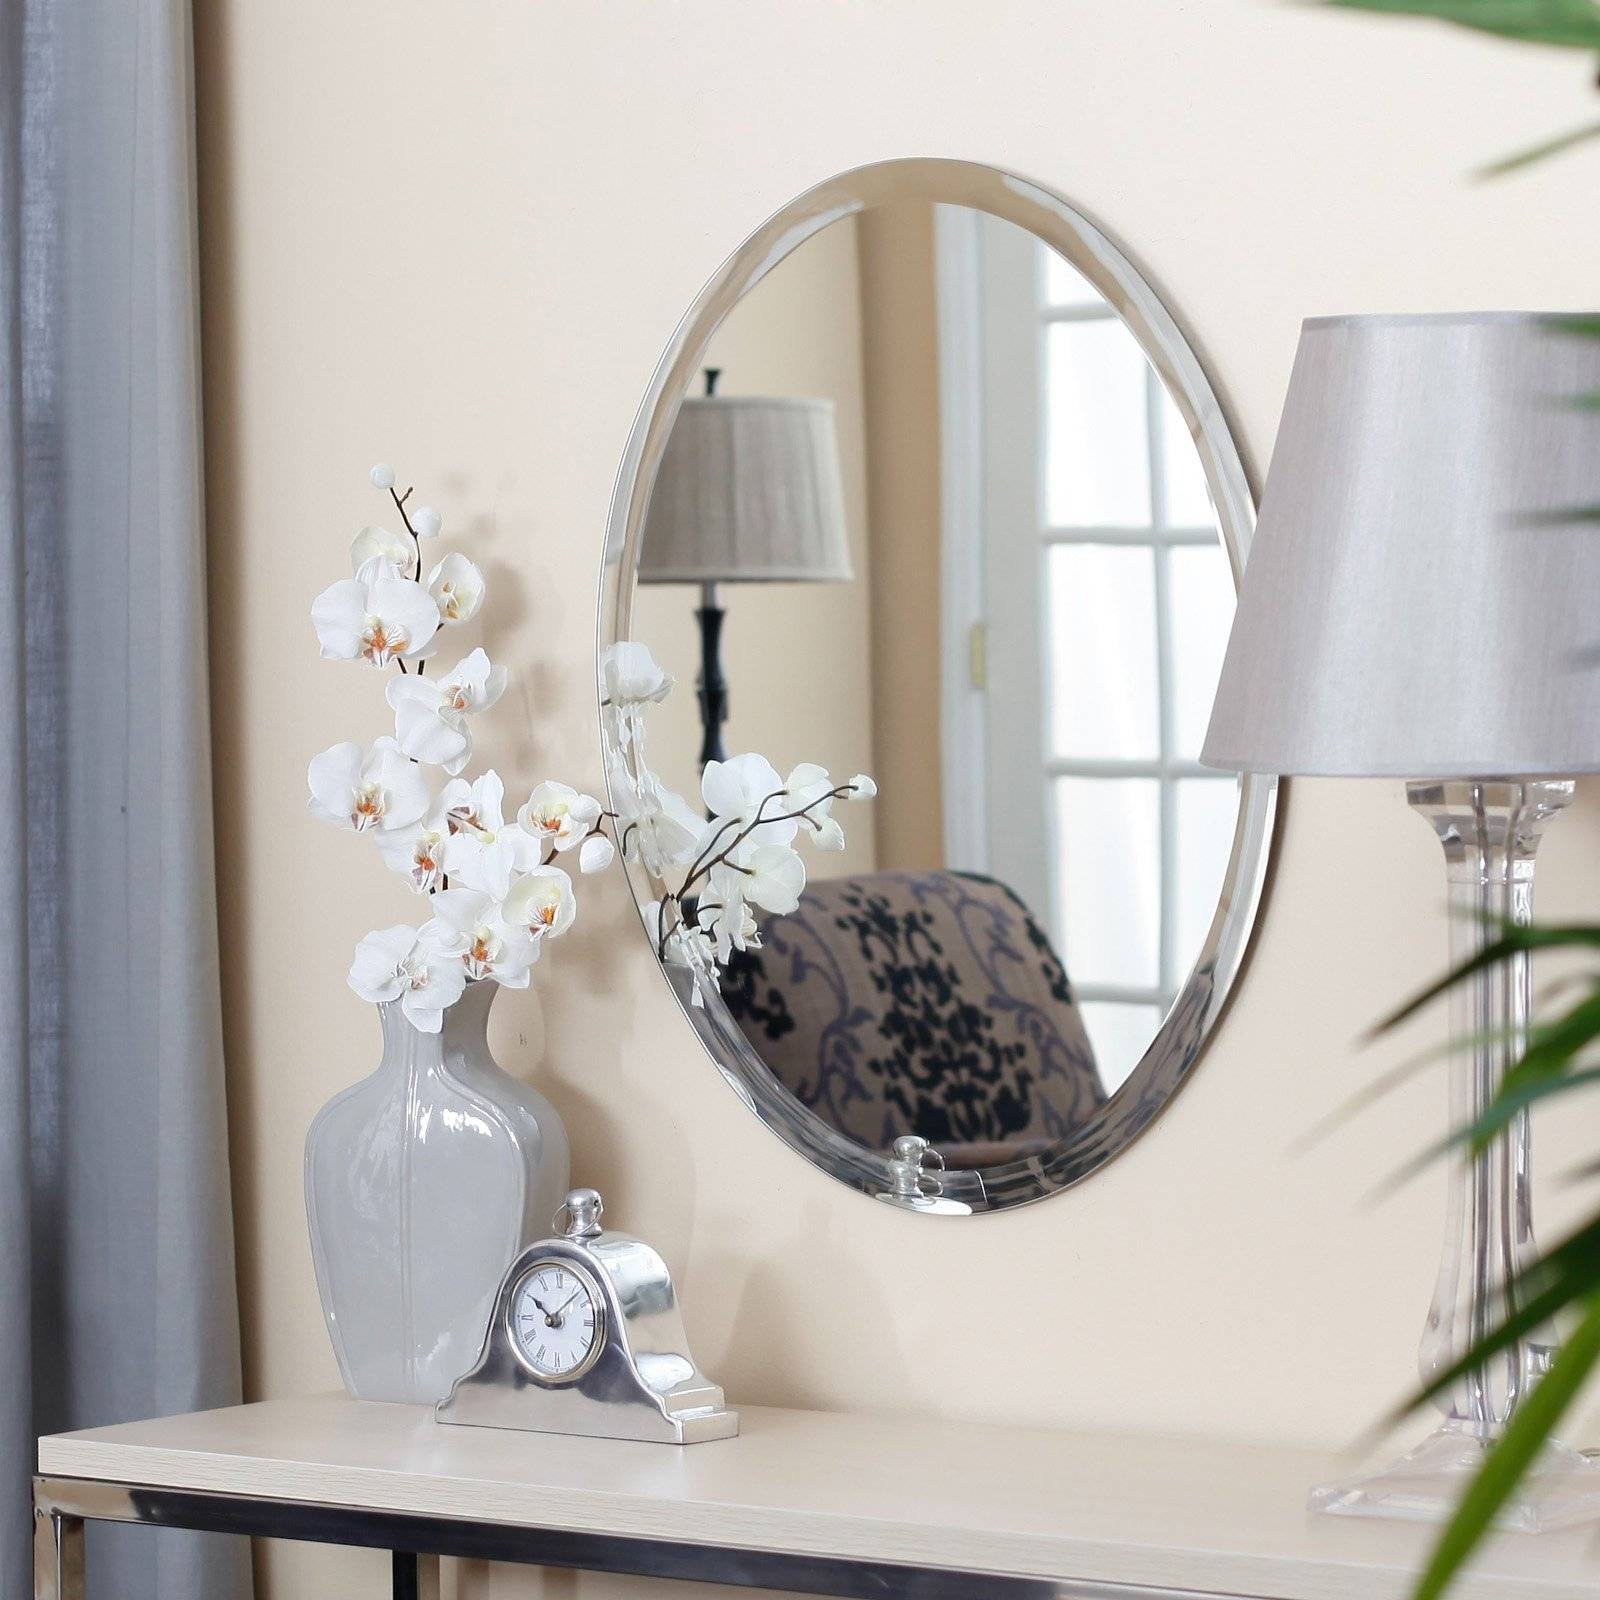 Uttermost Frameless Oval Beveled Vanity Mirror | Hayneedle throughout Large Oval Wall Mirrors (Image 15 of 15)